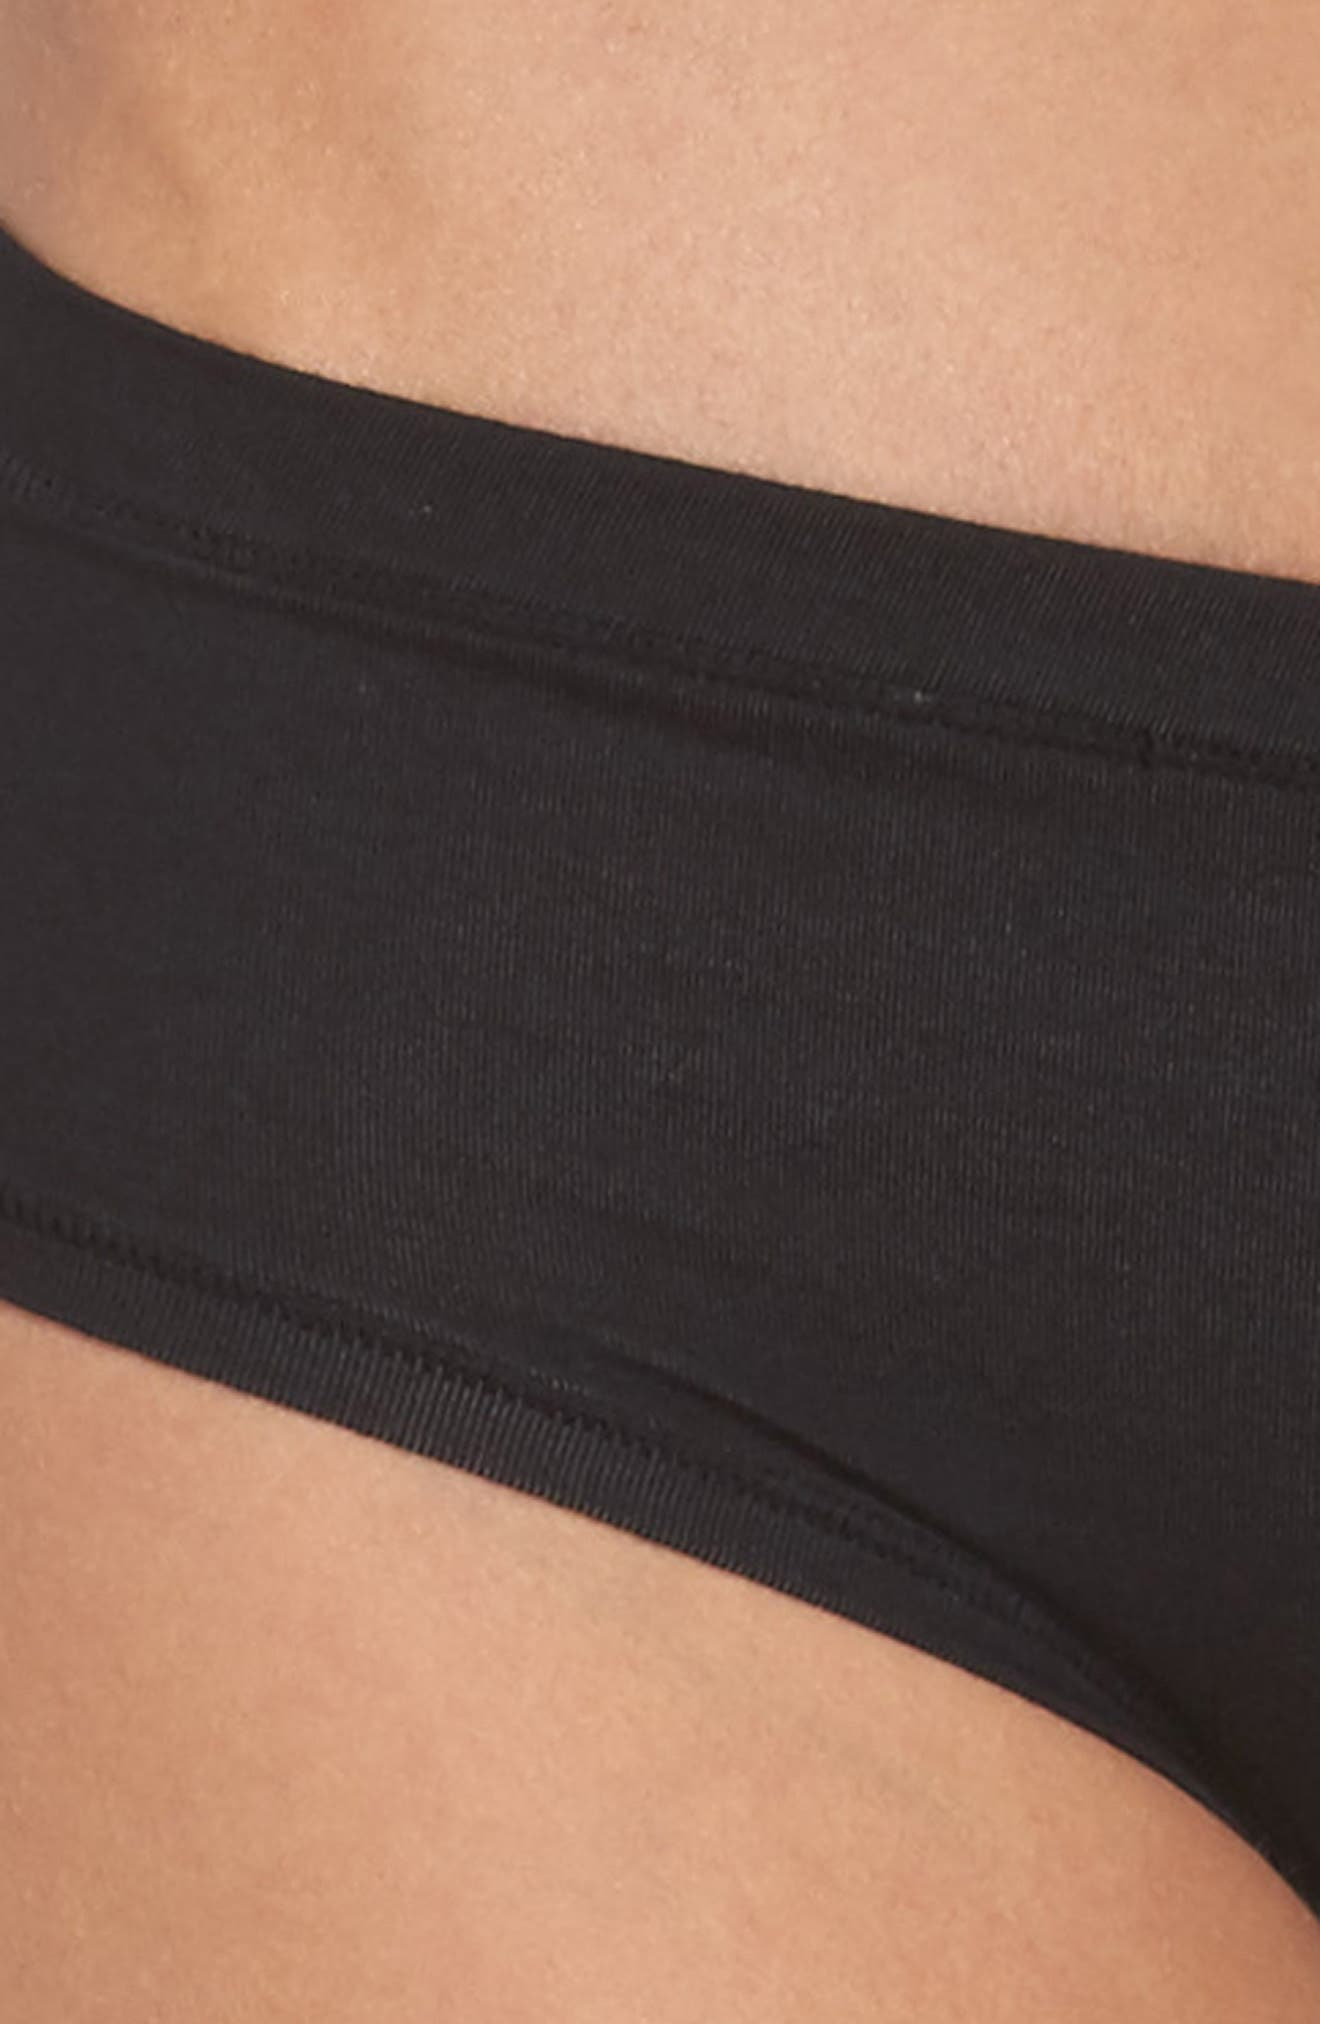 Hipster Briefs,                             Alternate thumbnail 4, color,                             BLACK